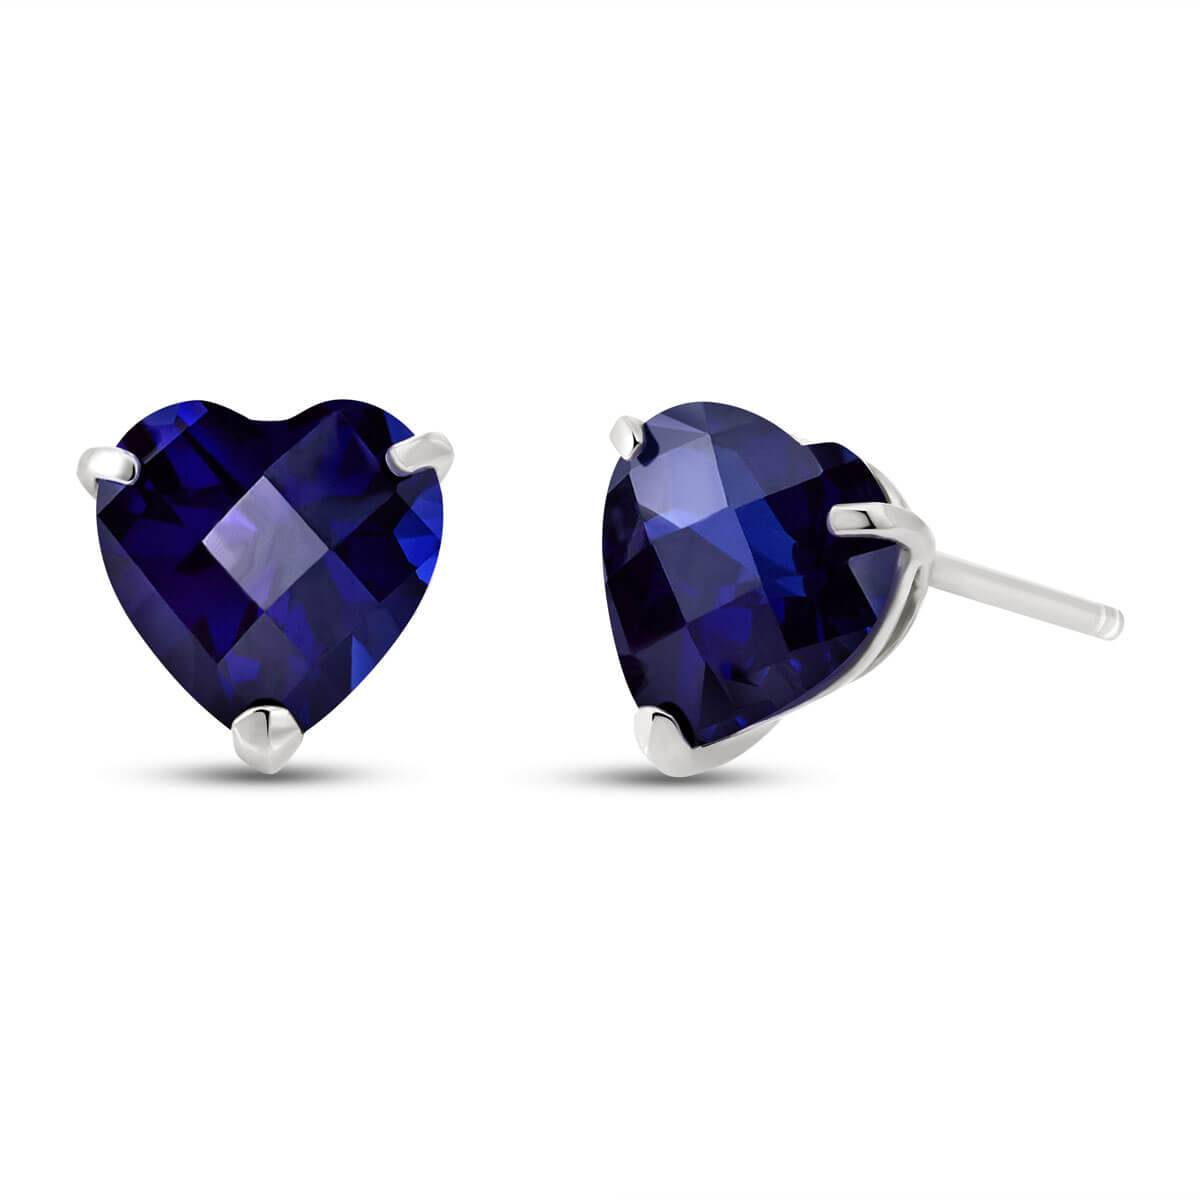 QP Jewellers Sapphire Stud Earrings 3.1 ctw in 9ct White Gold